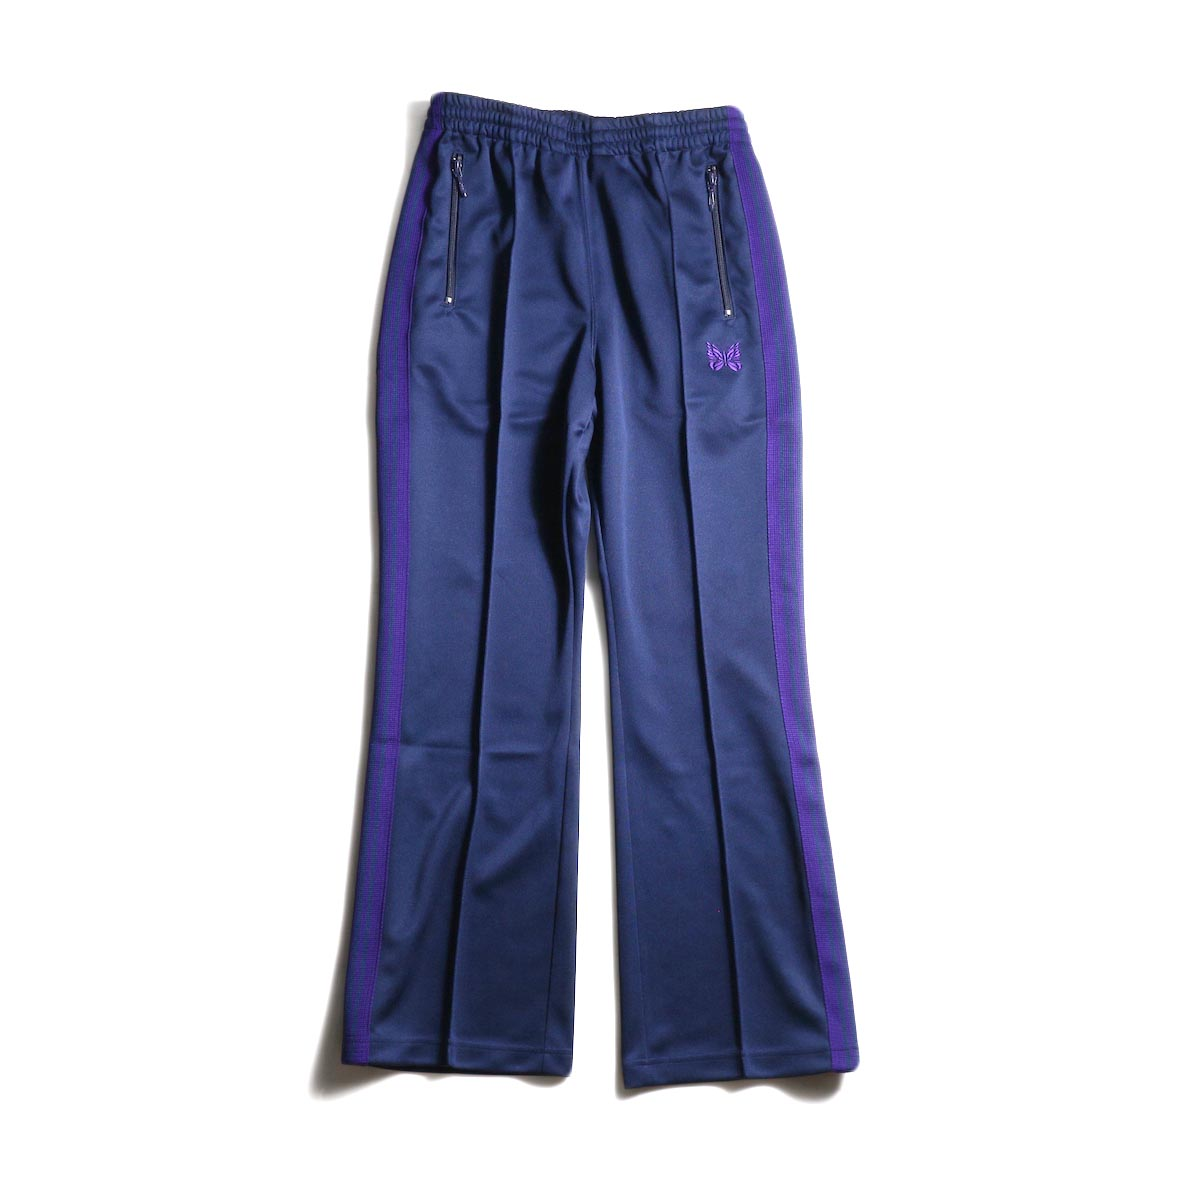 Needles / Boot Cut Track Pant -Poly Smooth (Navy)